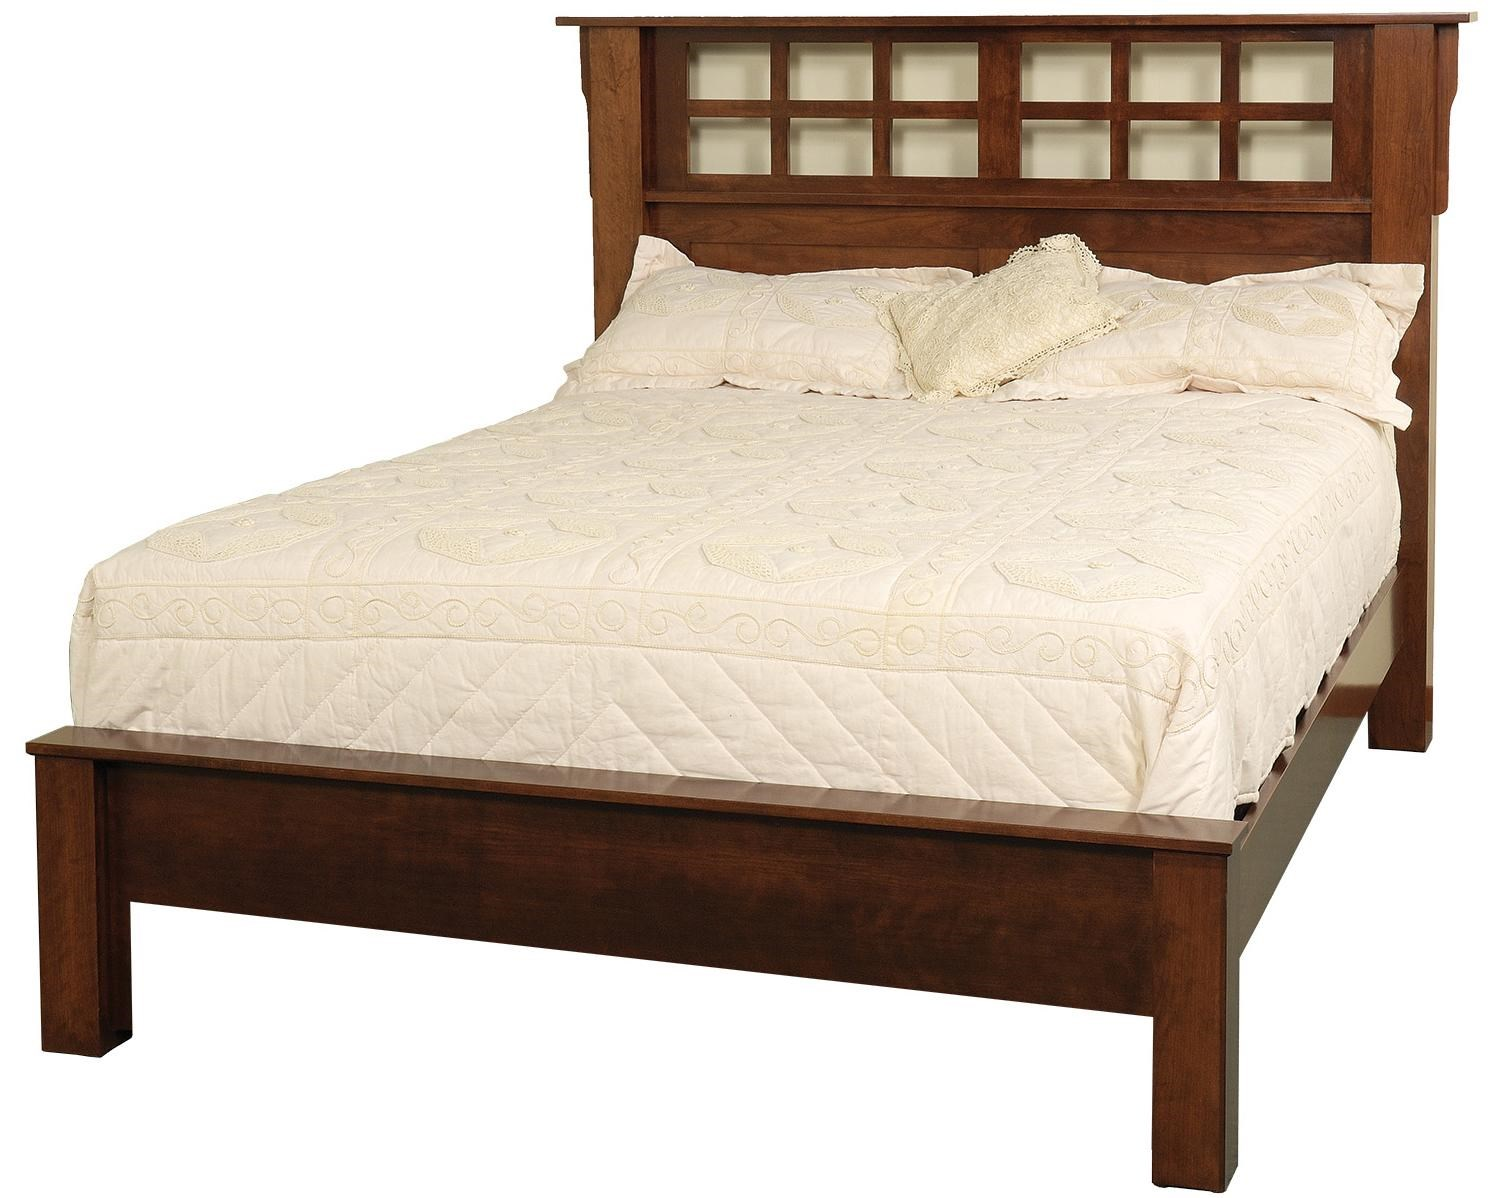 Amish Beds Bedfort Queen Bed W Low Footboard Image Dutch Country Mission Panel Bed In Oak